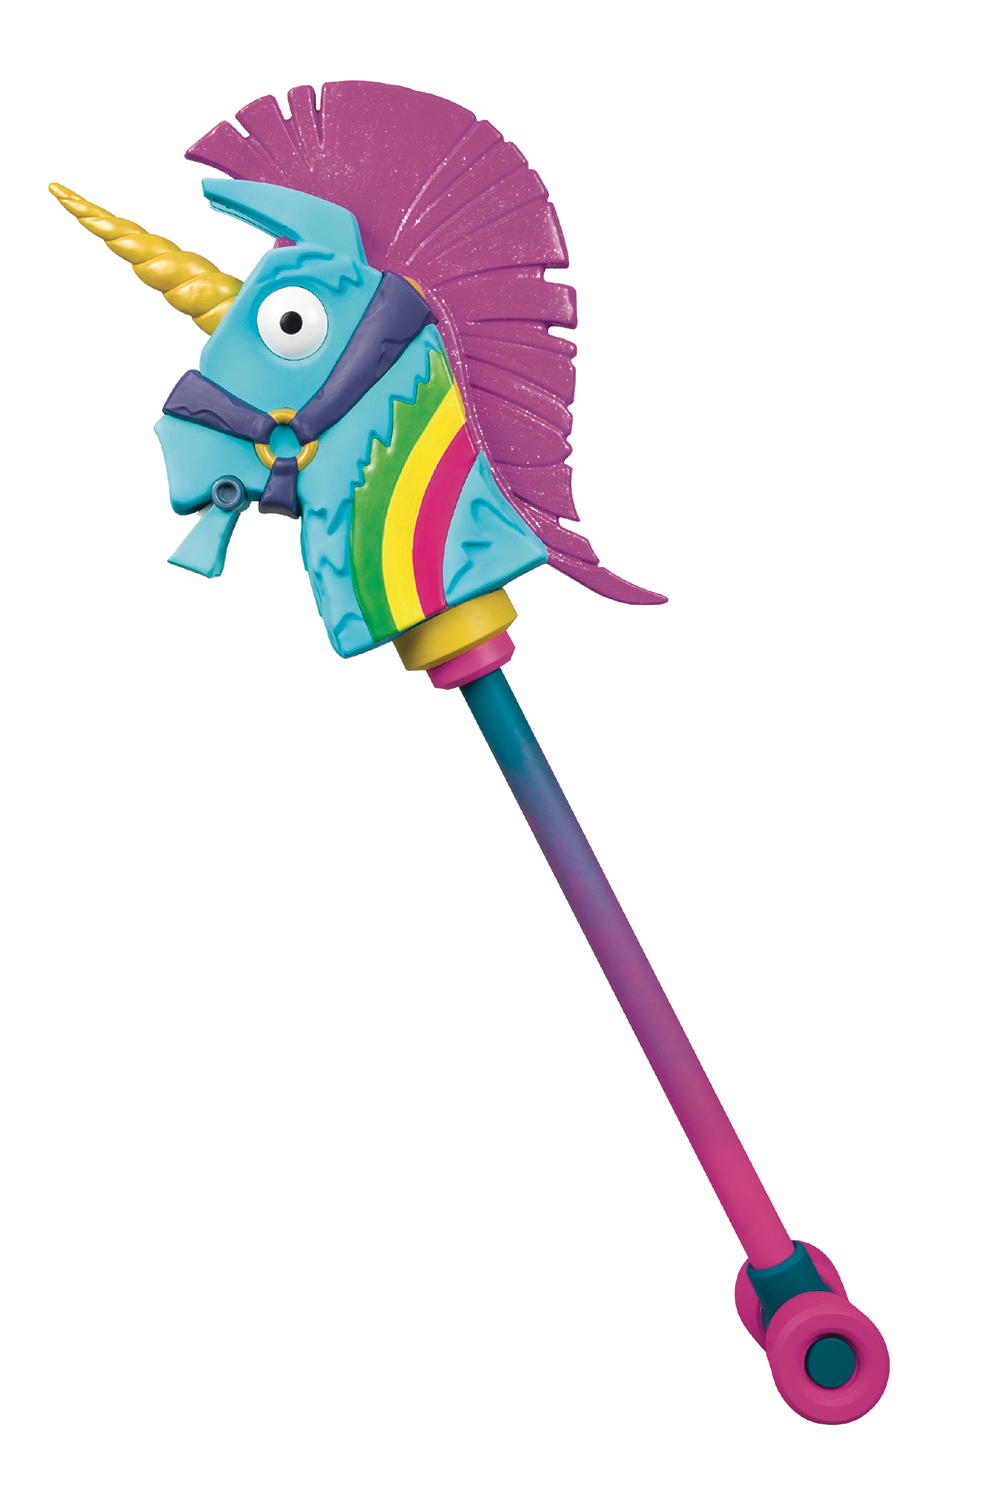 FORTNITE RAINBOW SMASH PREM ROLEPLAY PICKAXE